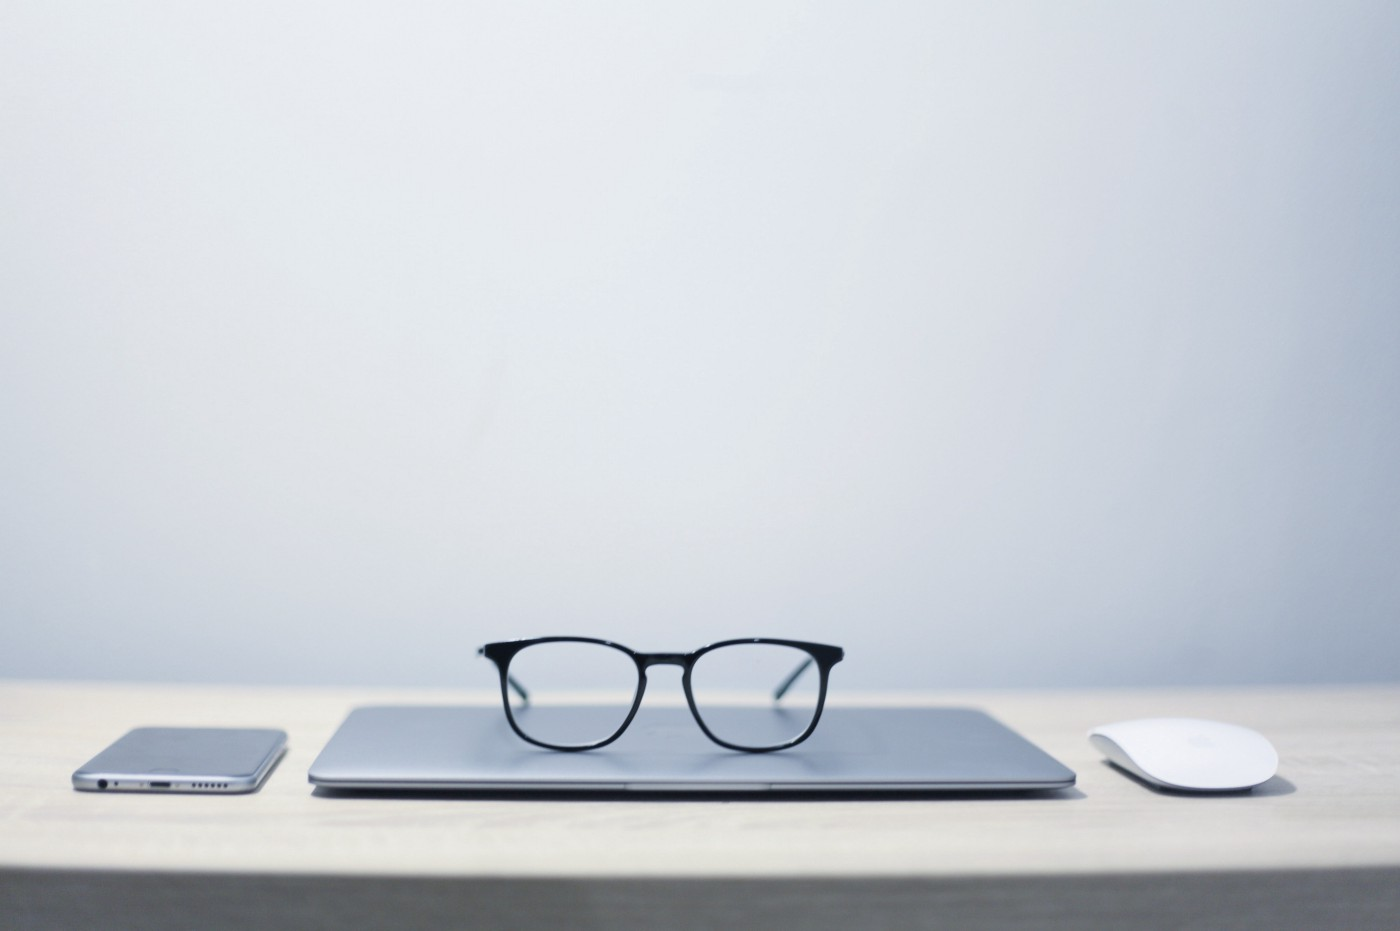 Pair of glasses sitting on a laptop